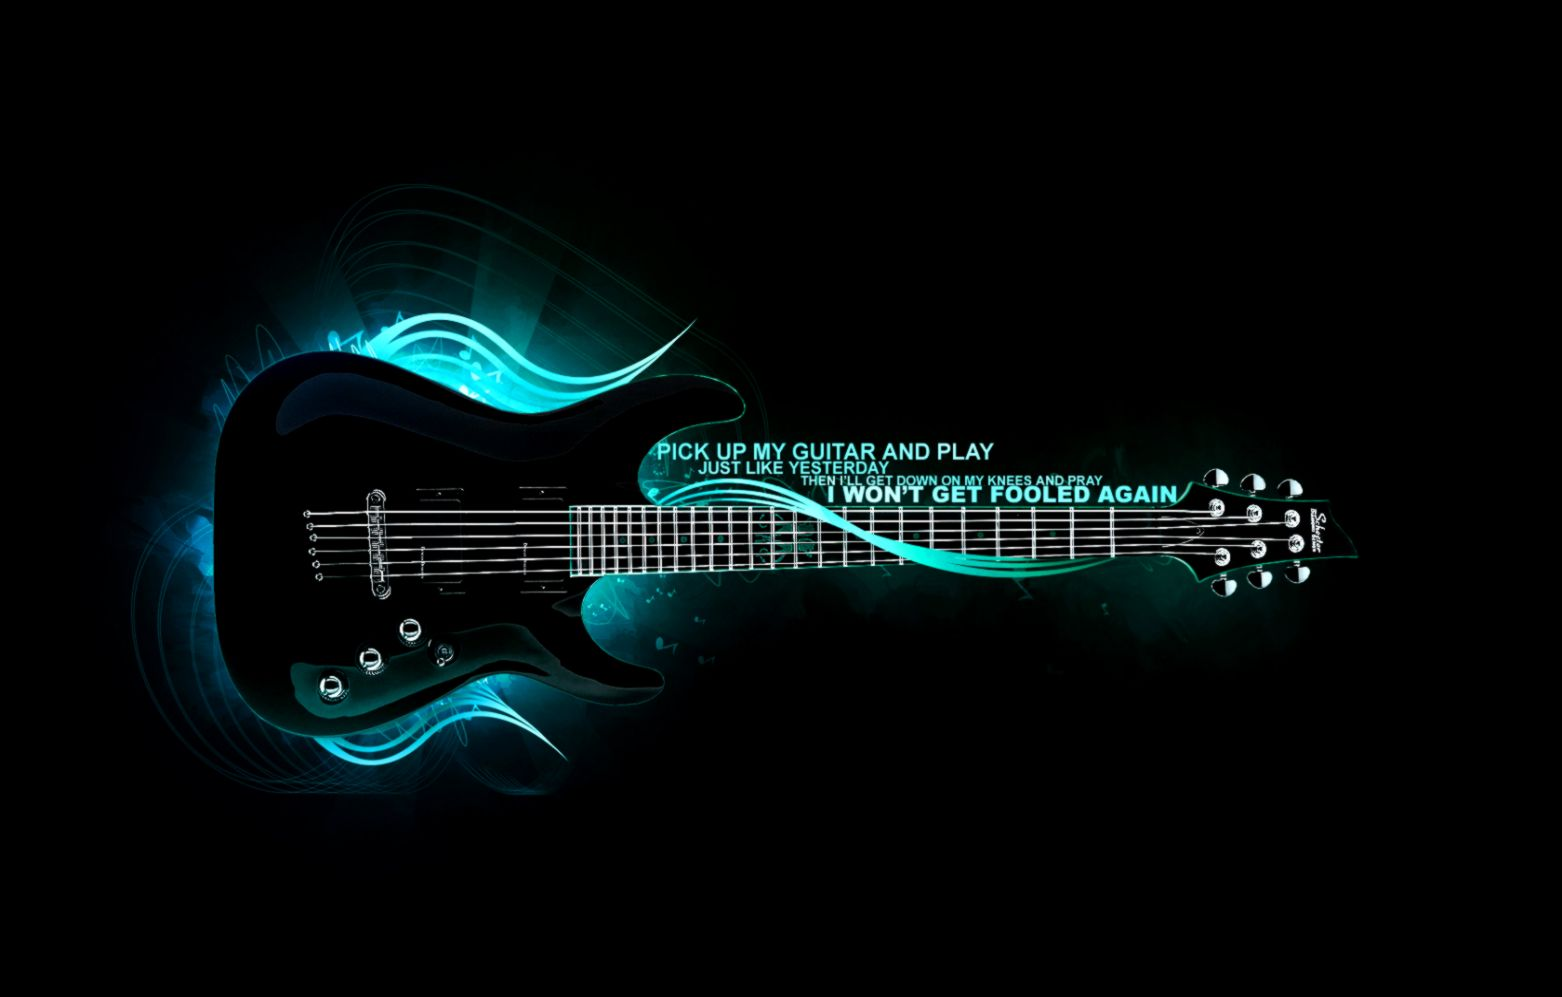 Guitar Black Music Hd Wallpaper The Champion Wallpapers